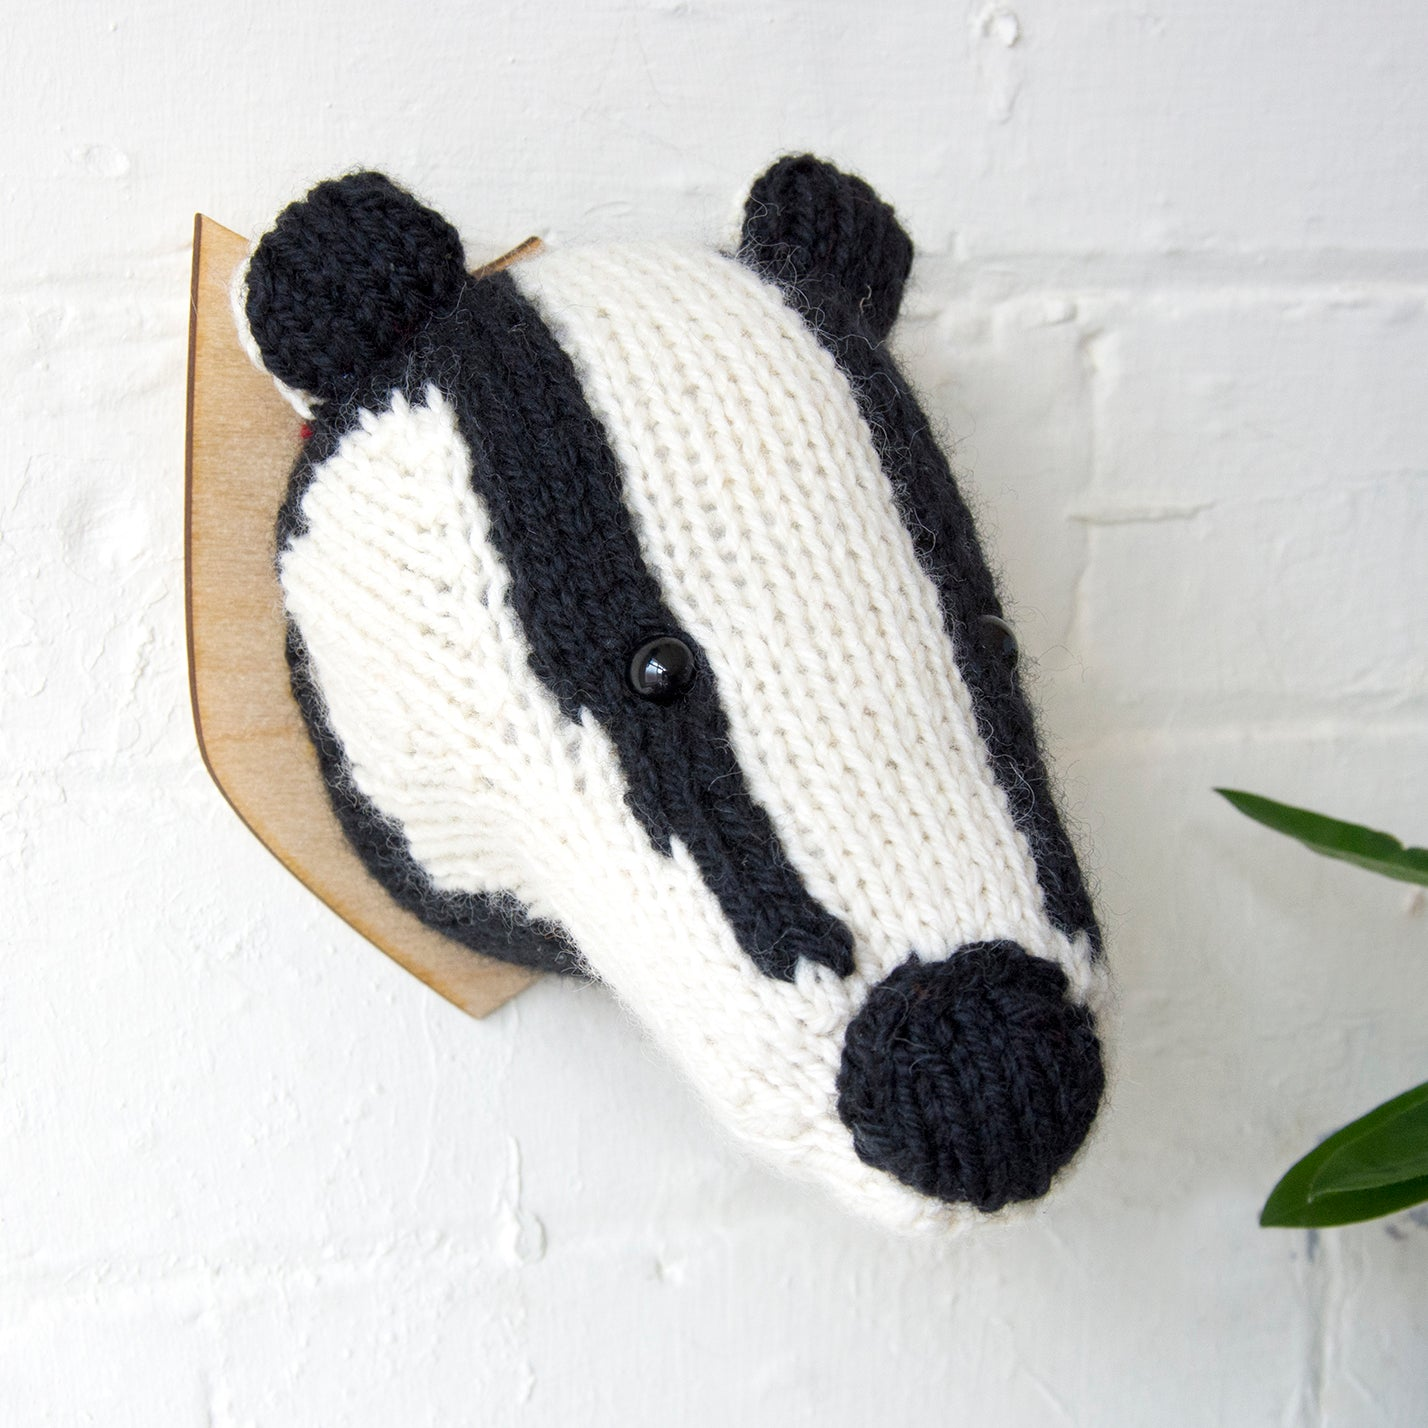 Mini Badger Head Knitting Kit (4572067627140)